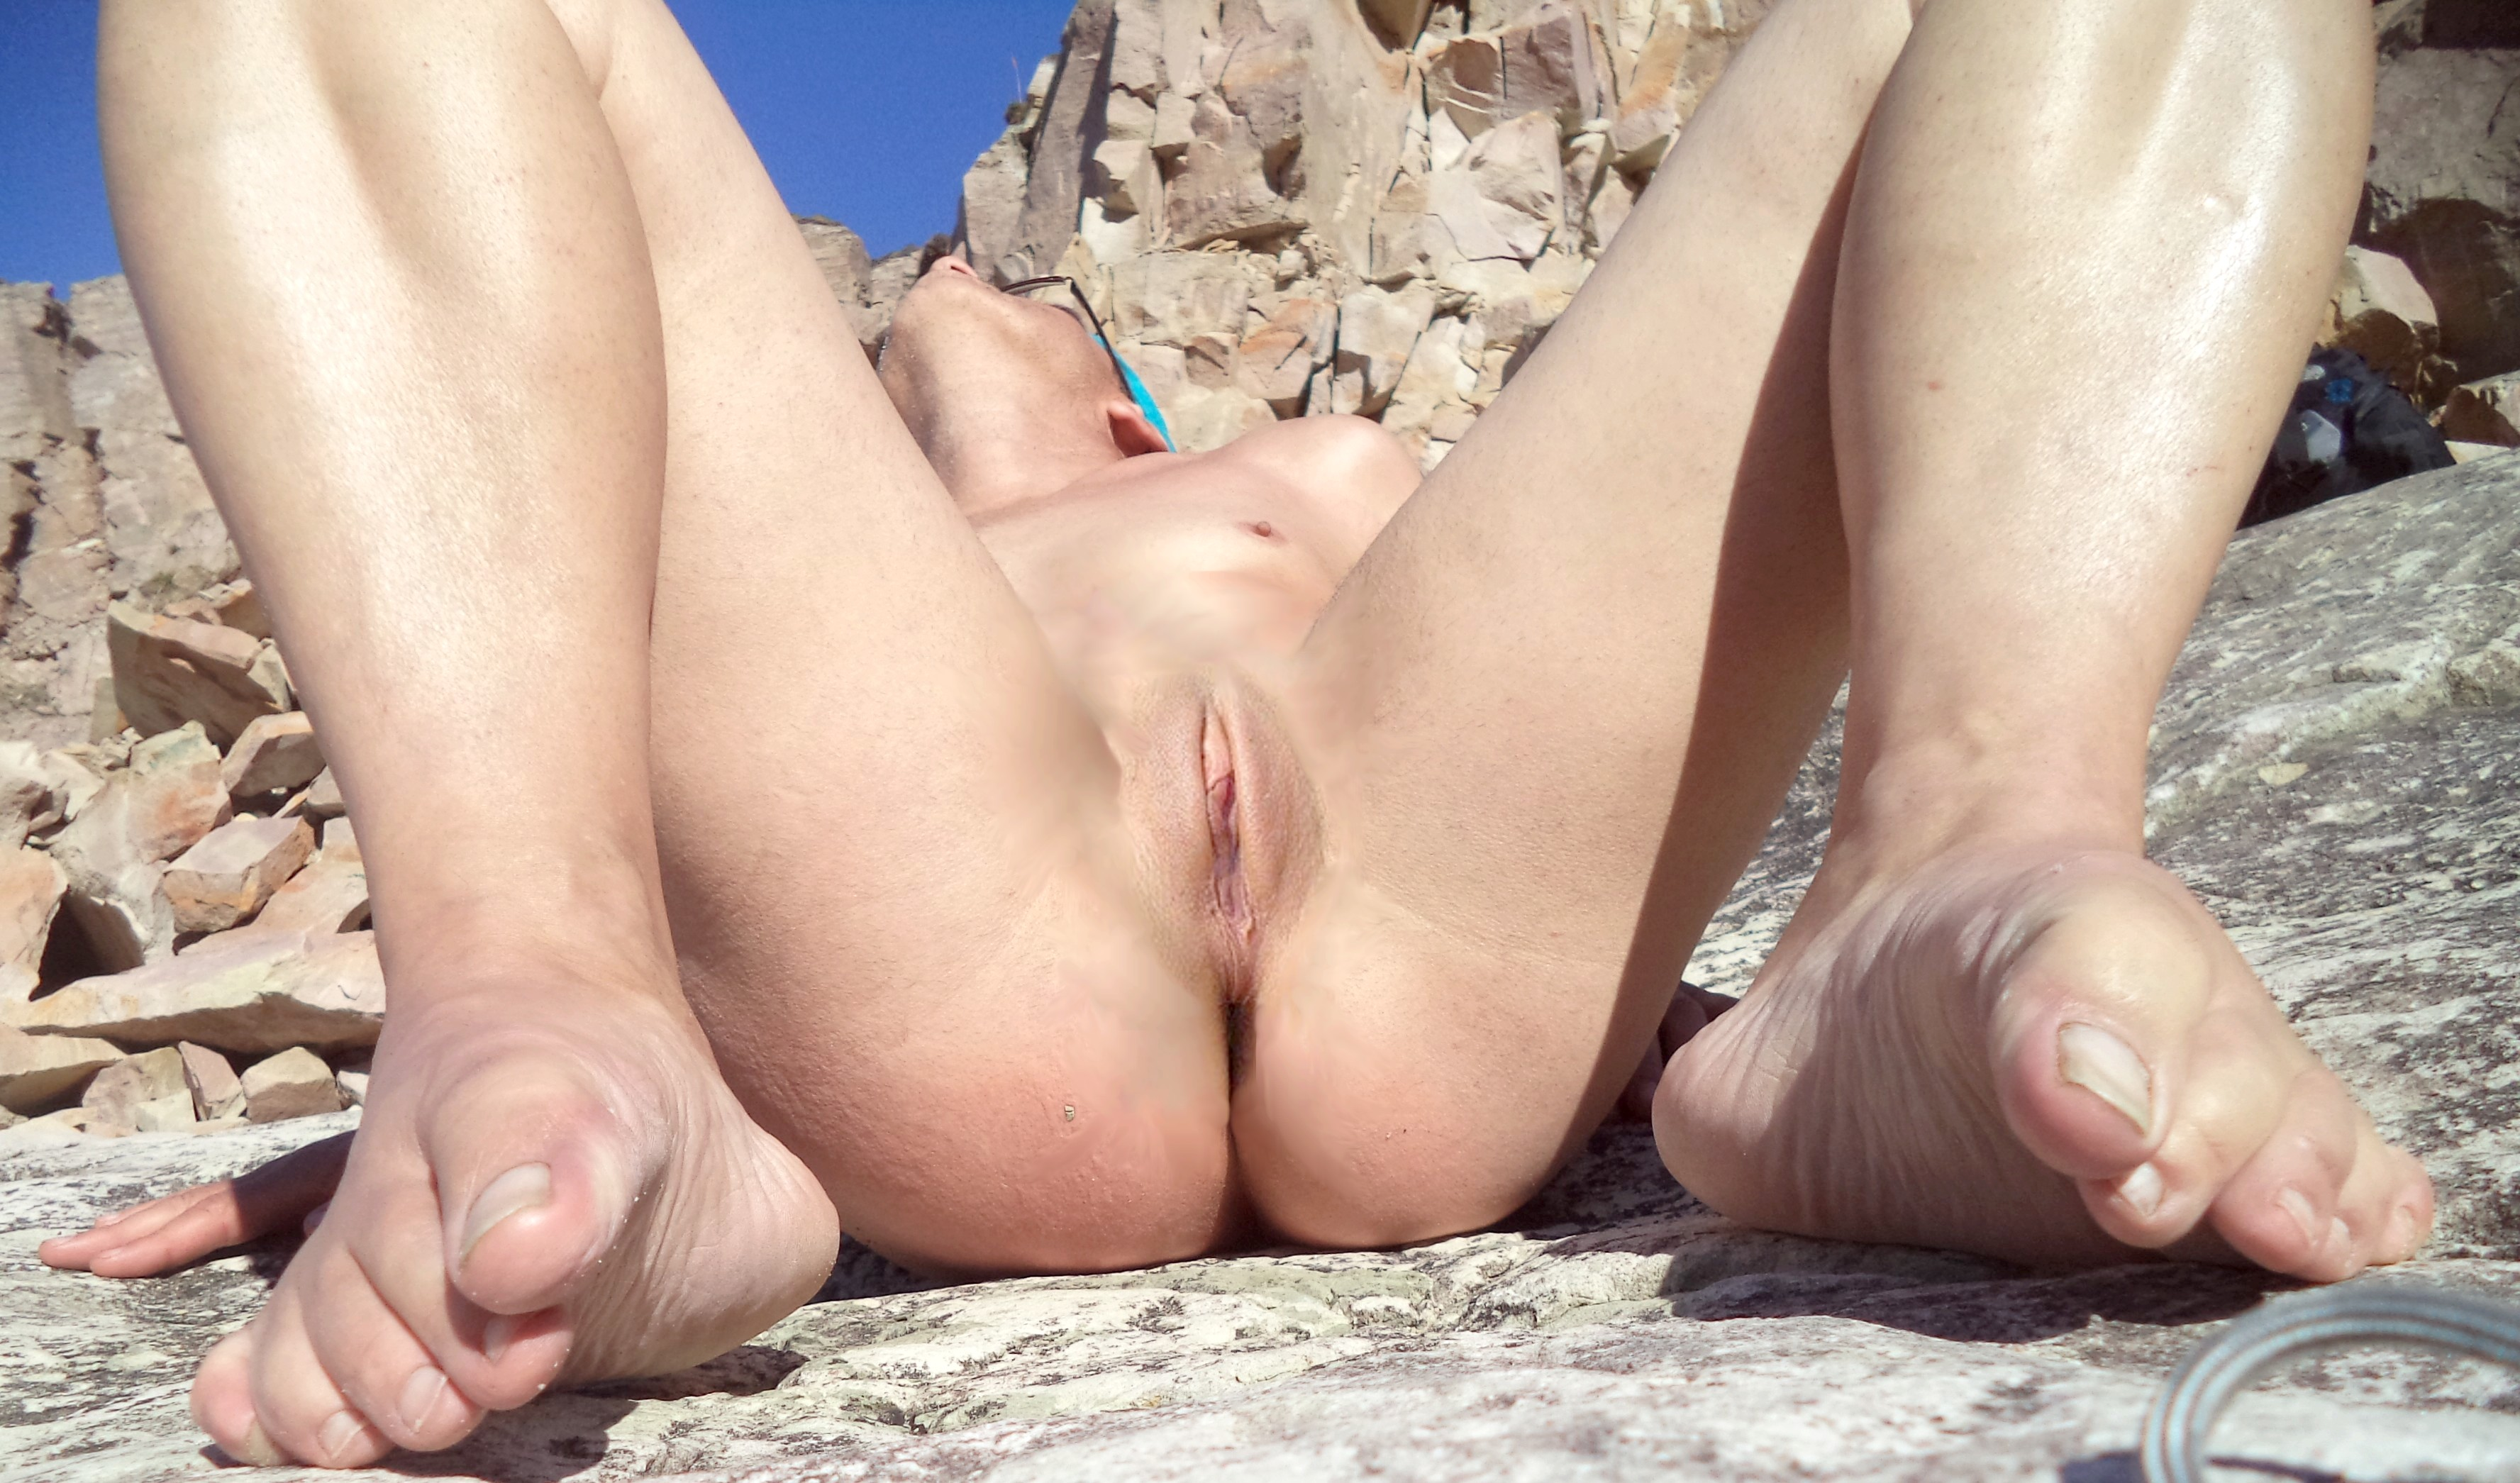 Interracial group nude sunbathing pictures